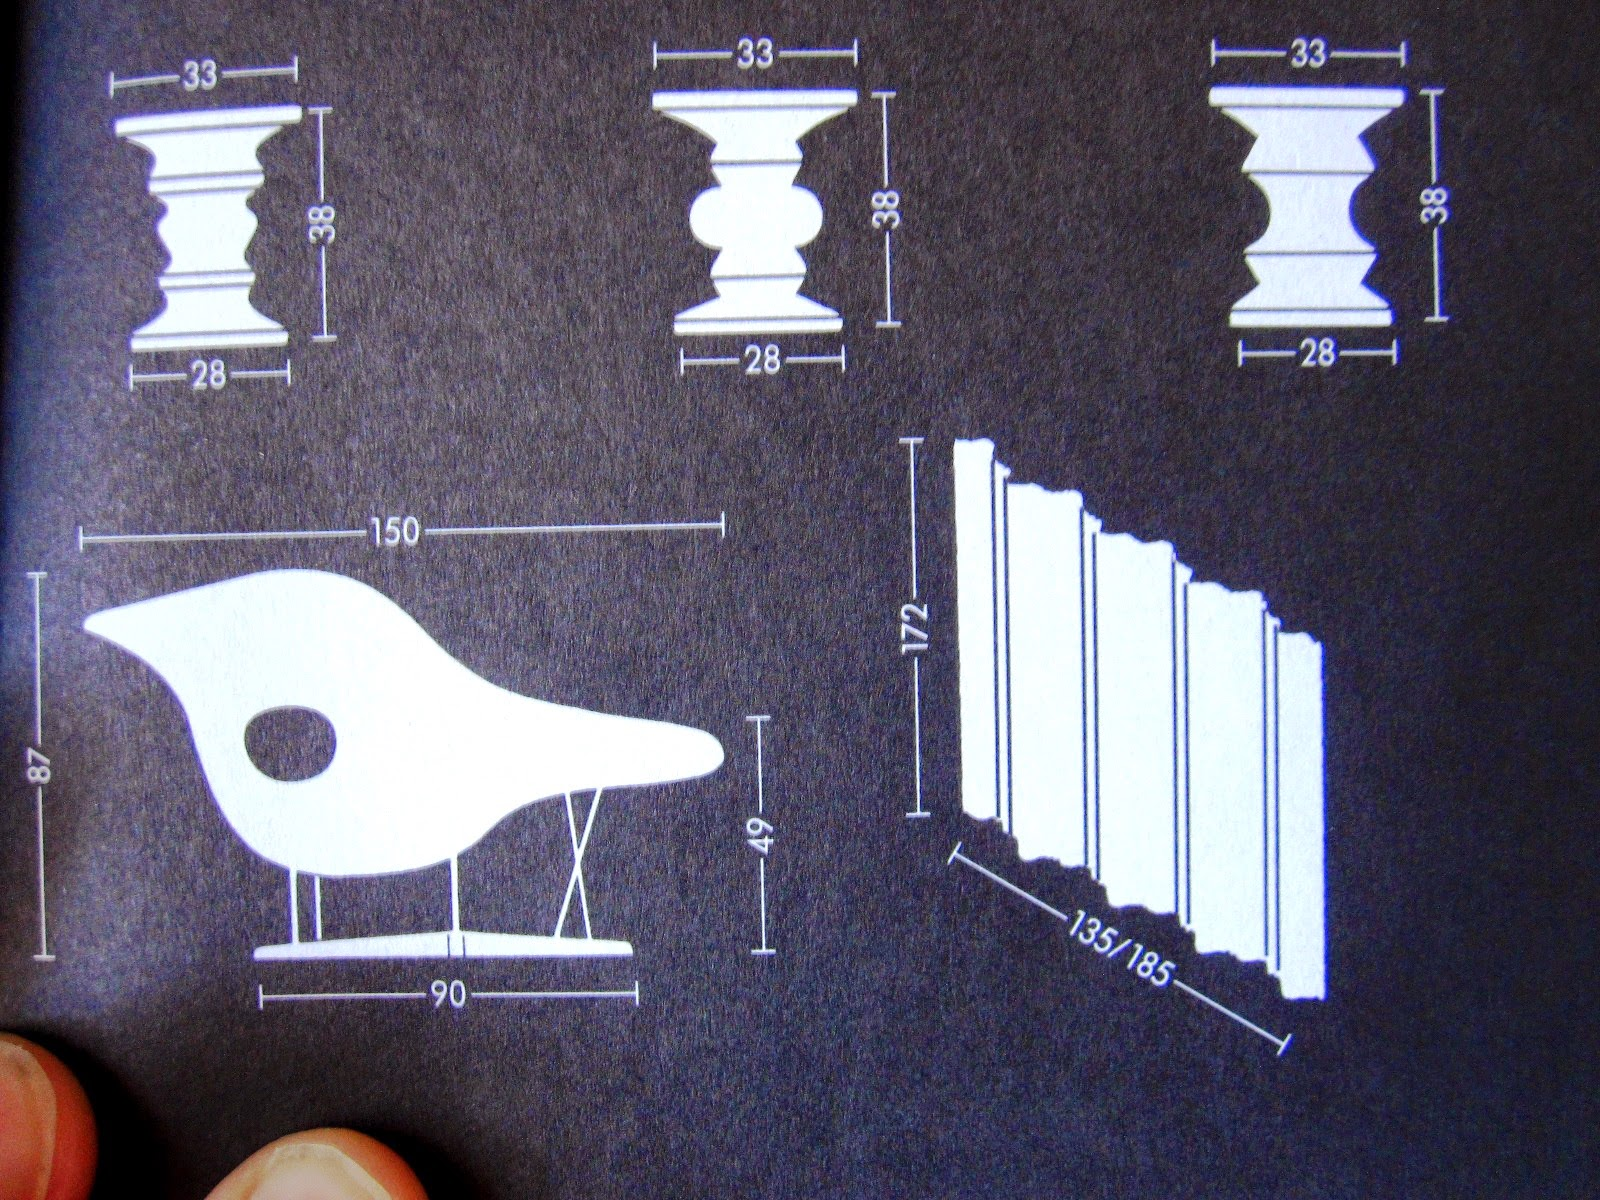 Close up of a page in a vitra catalogue, showing measurements for Eames stools.